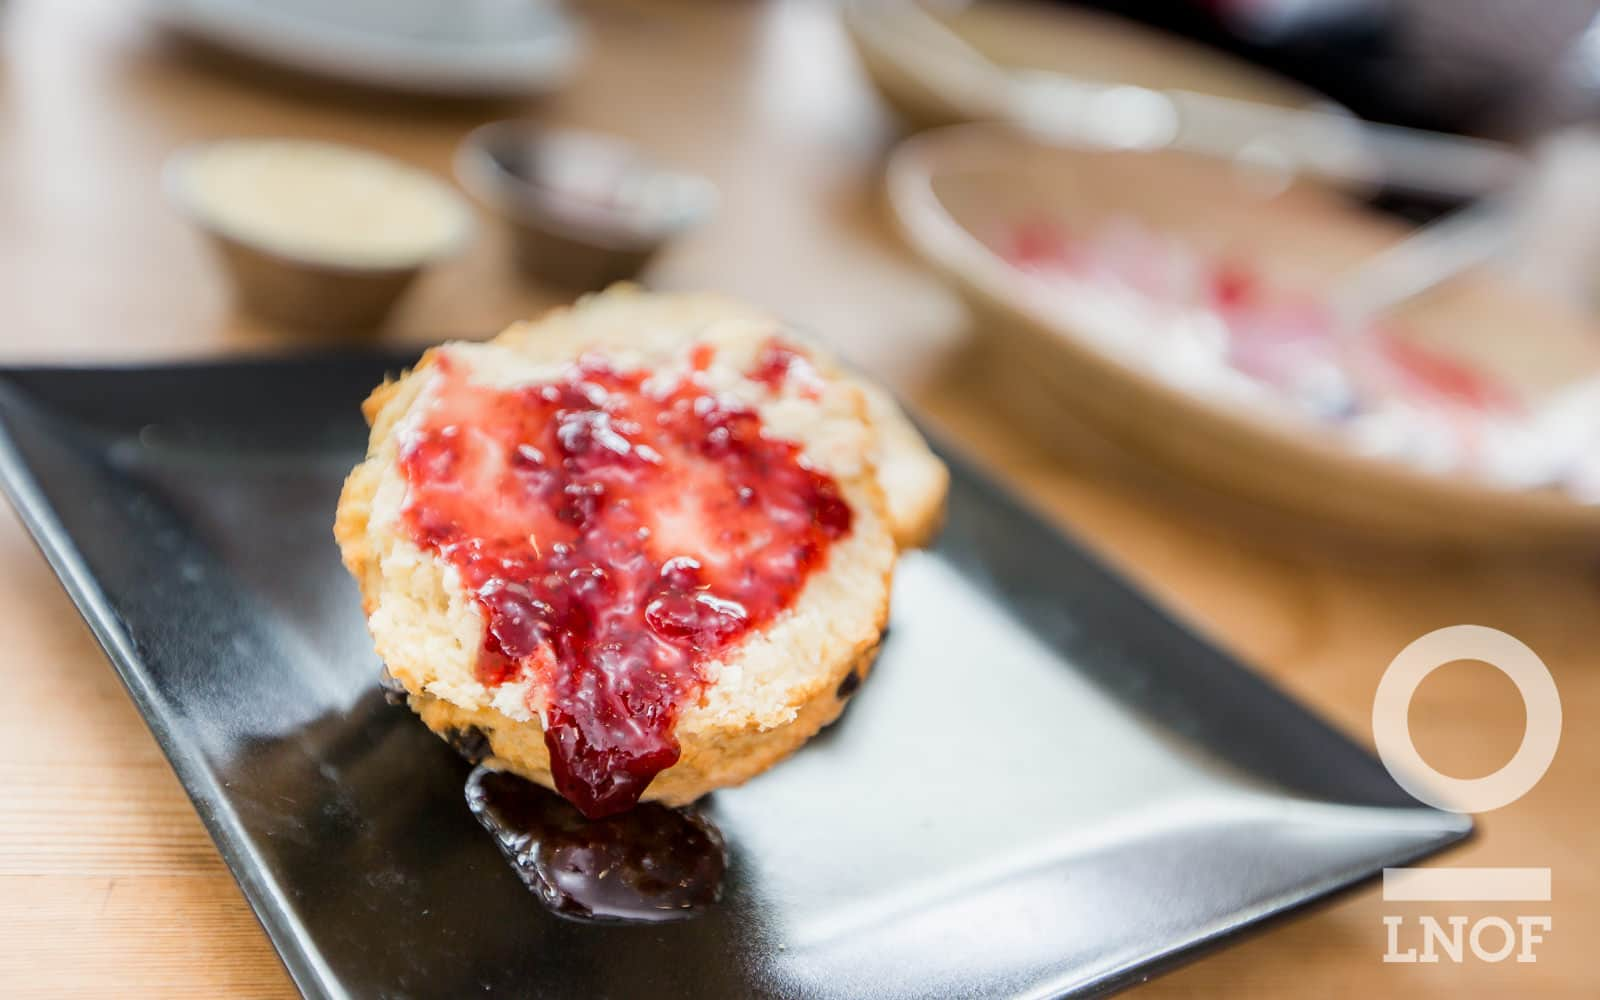 Fruit scone and jam at Baltic Kitchen in Newcastle Gateshead